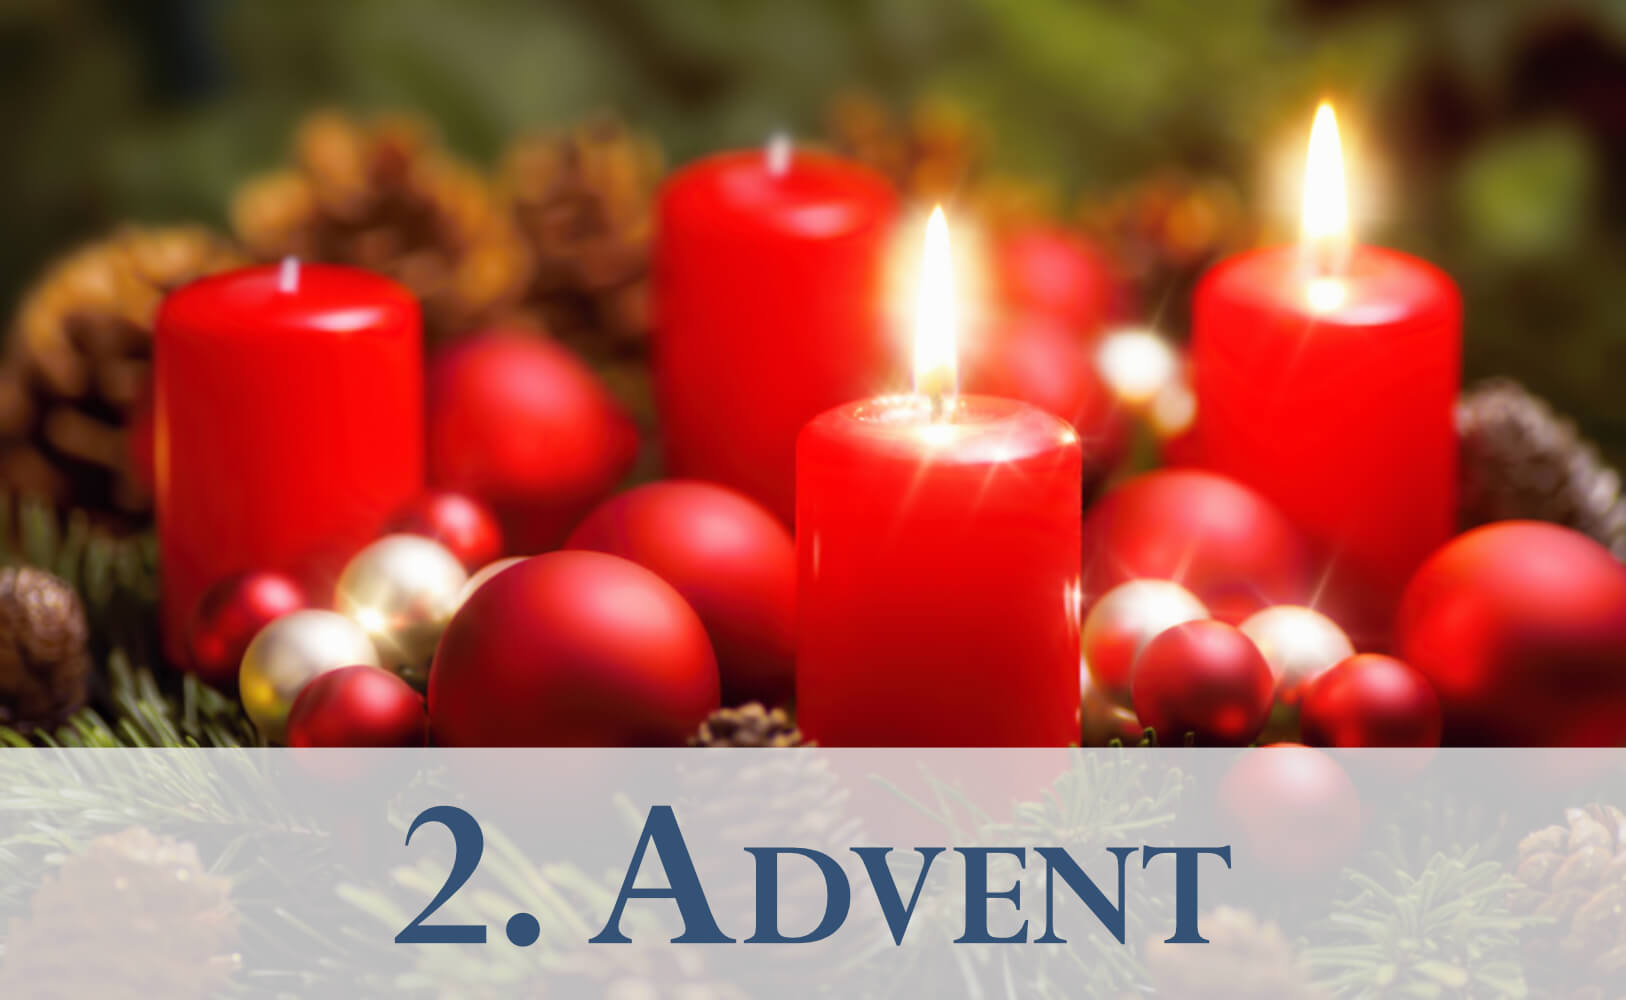 Informationen zum 2. Advent